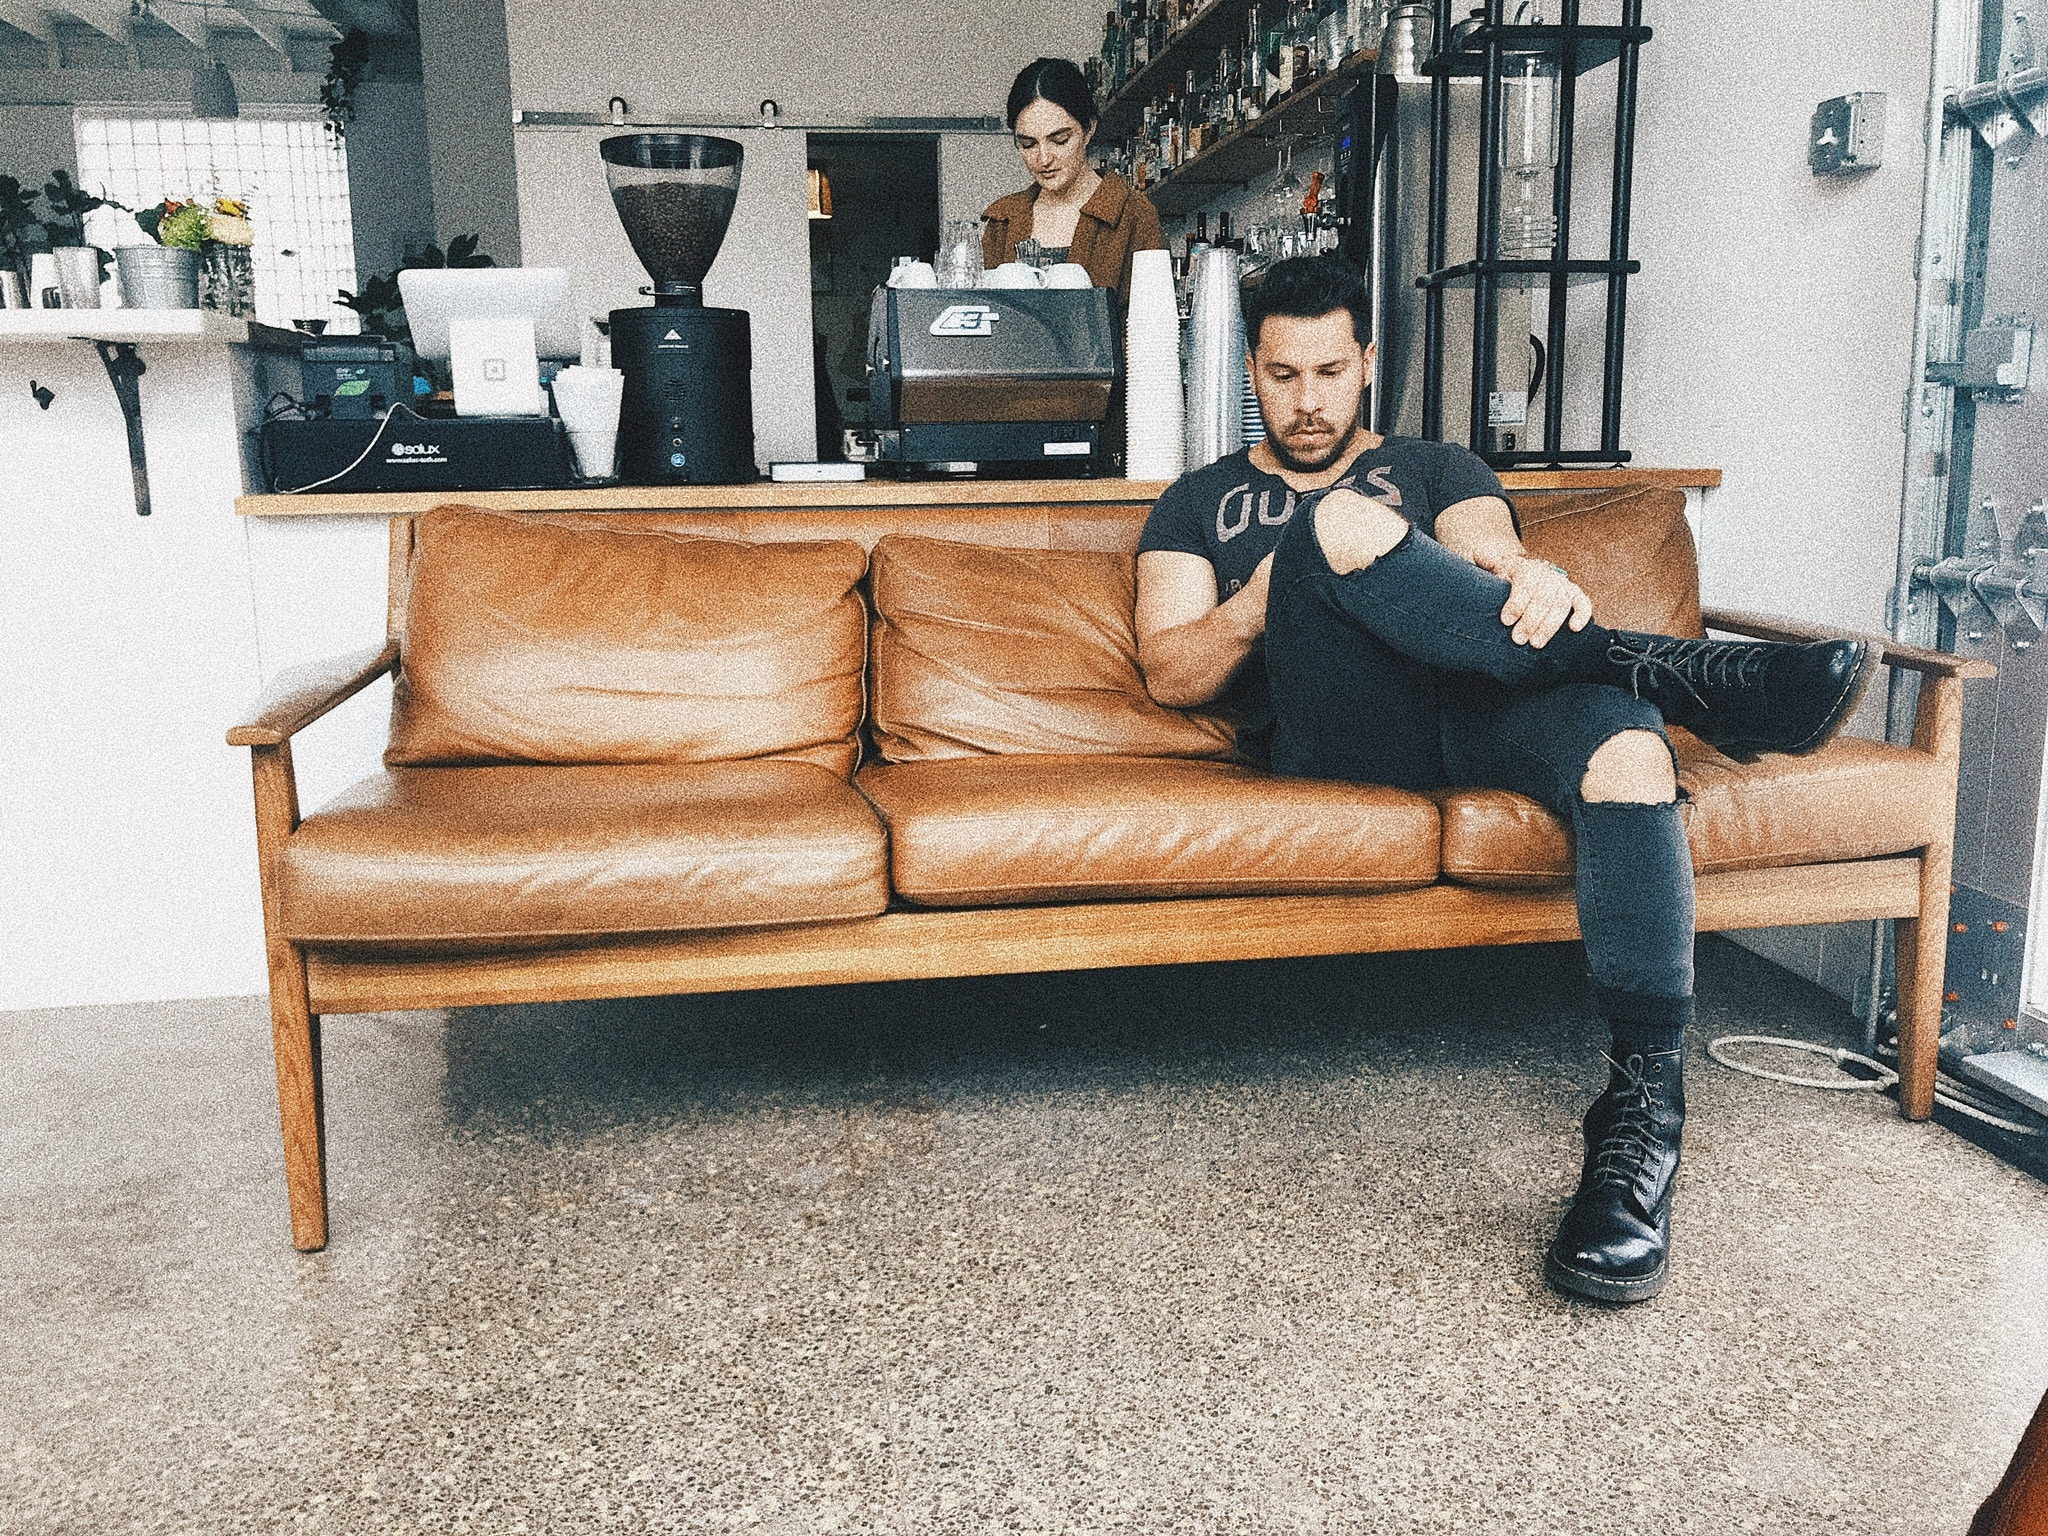 A cafe with a couch and a man on it.